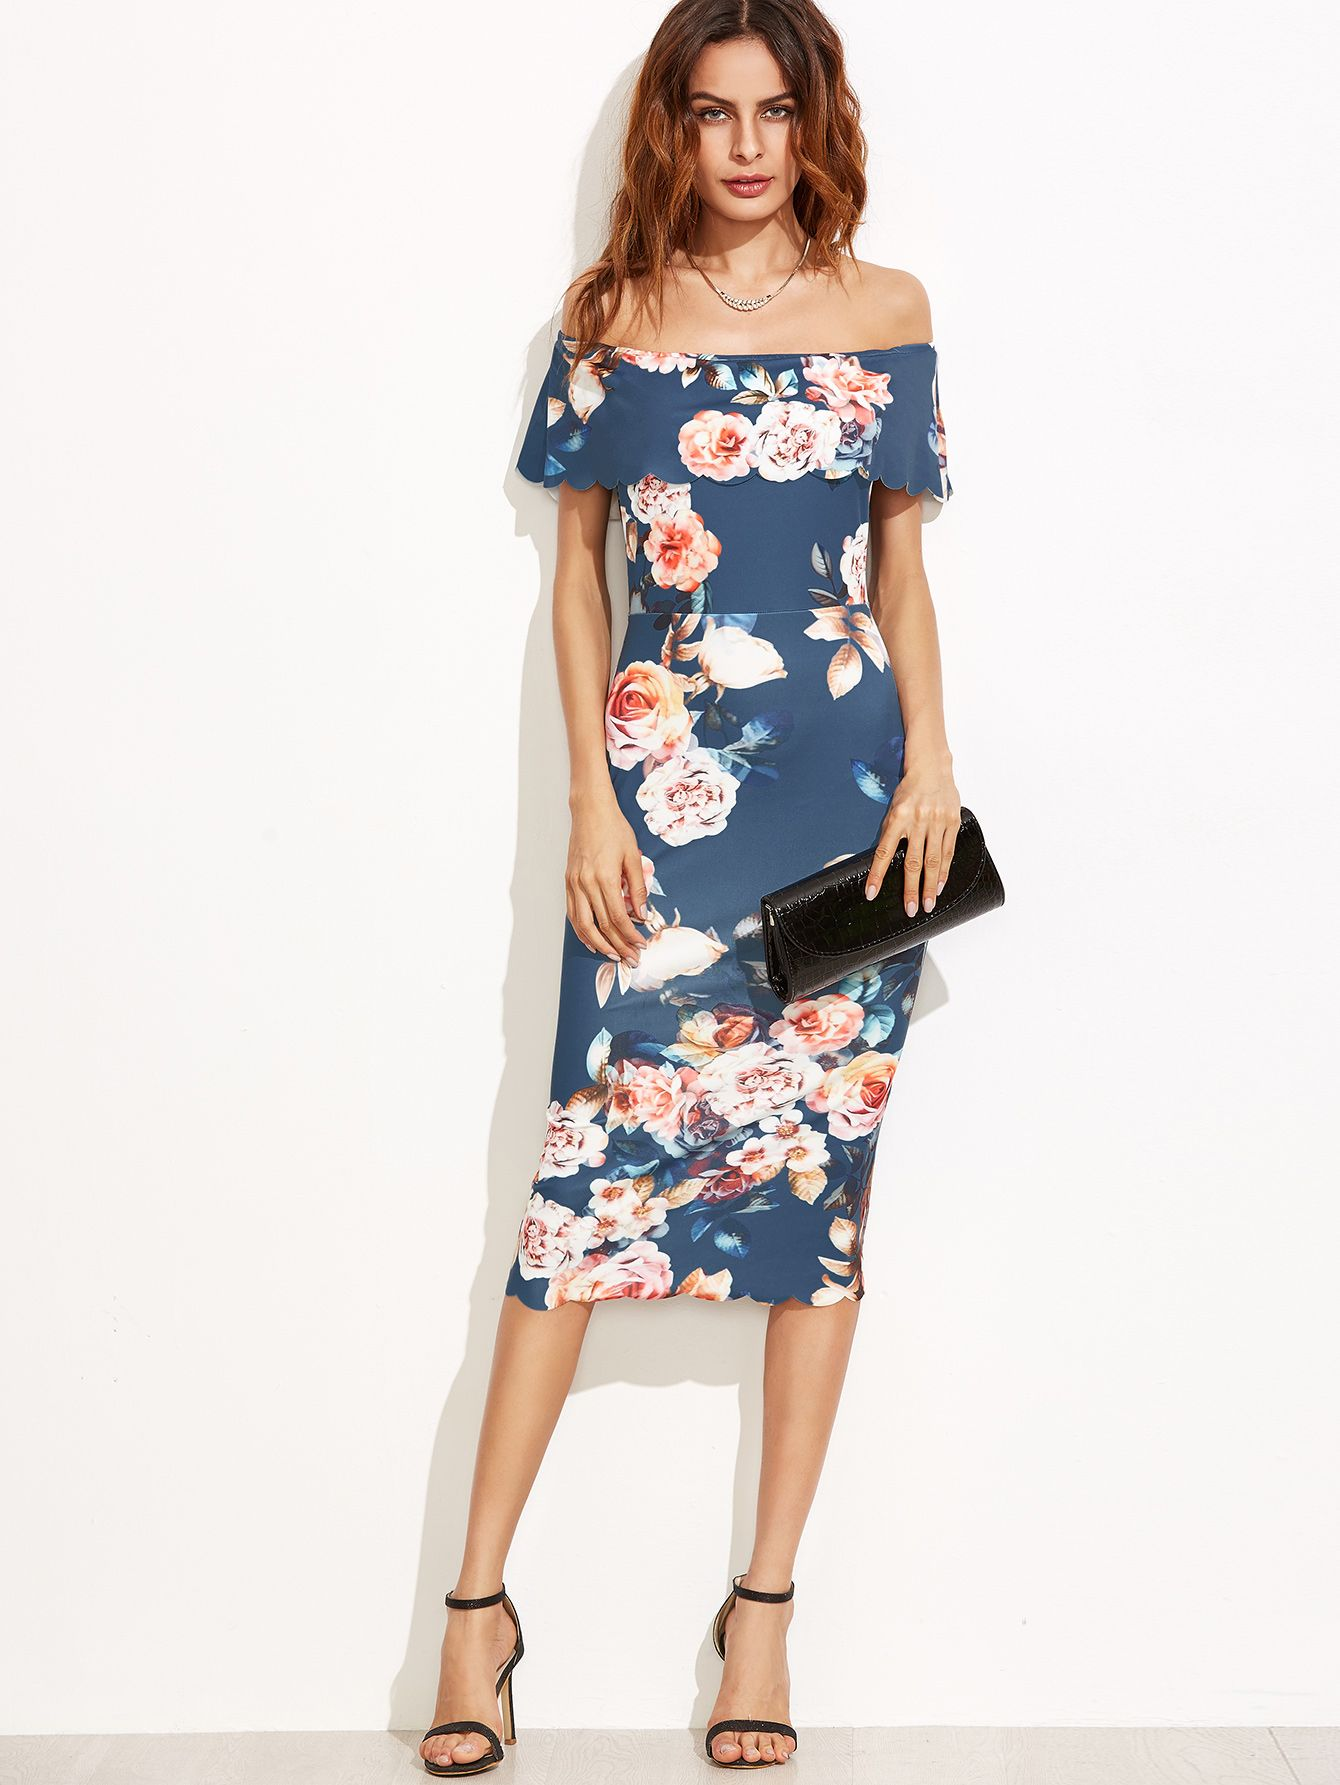 Shein Calico Print Scalloped Trim Bardot Dress | Pinterest